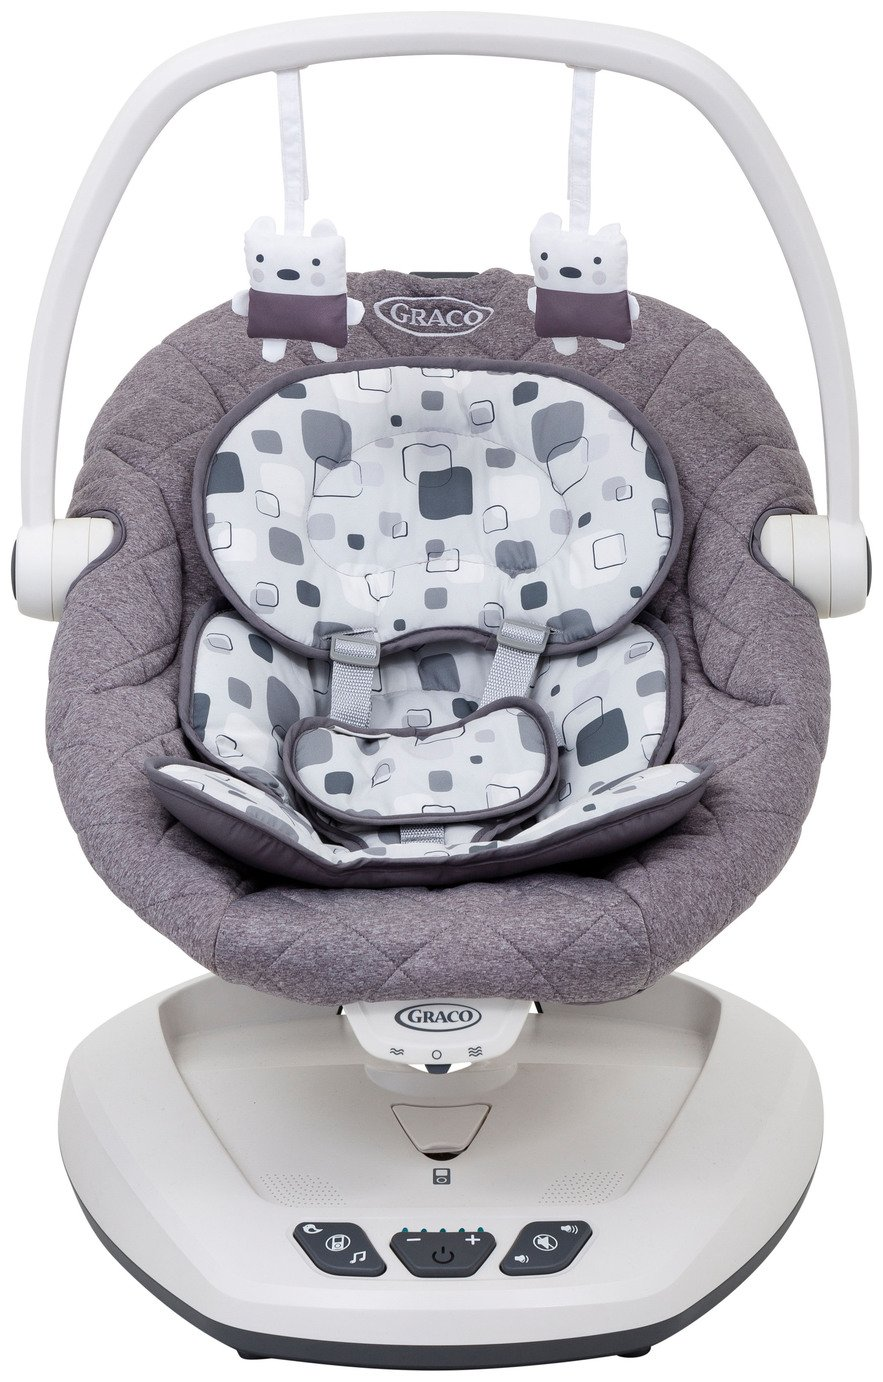 Graco Move with Me Soother Bouncer - Block Party Best Price, Cheapest Prices